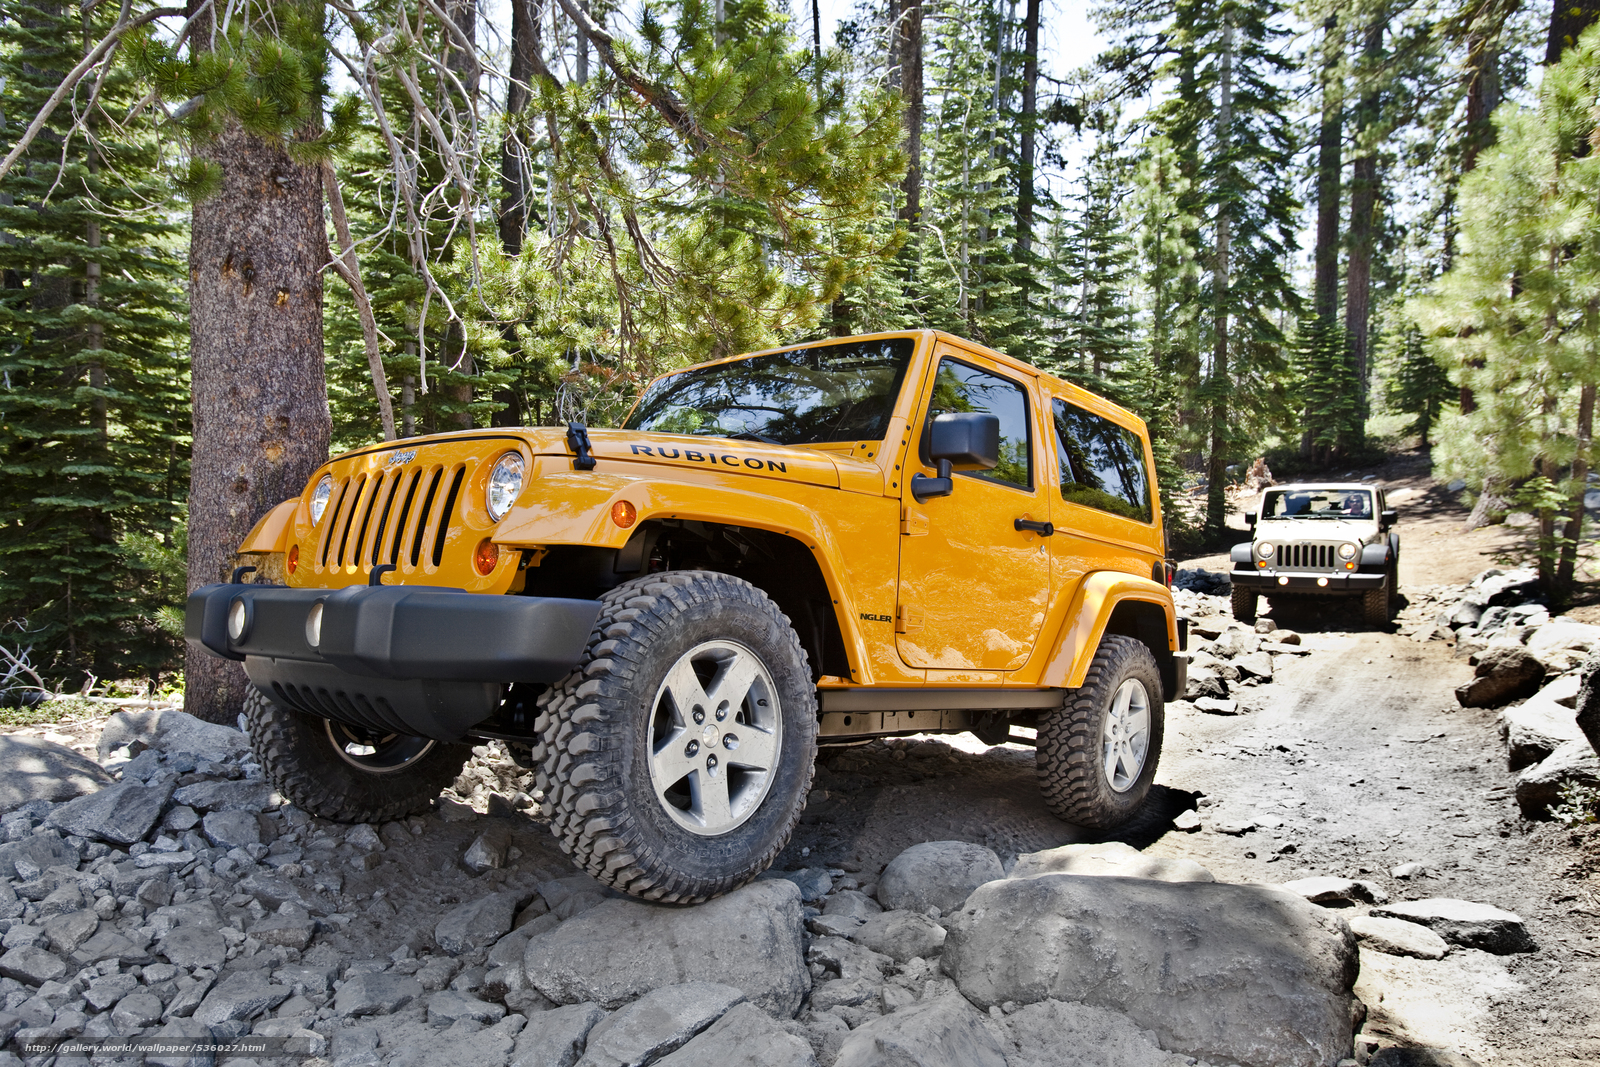 Jeep, Wrangler, Rubicon.